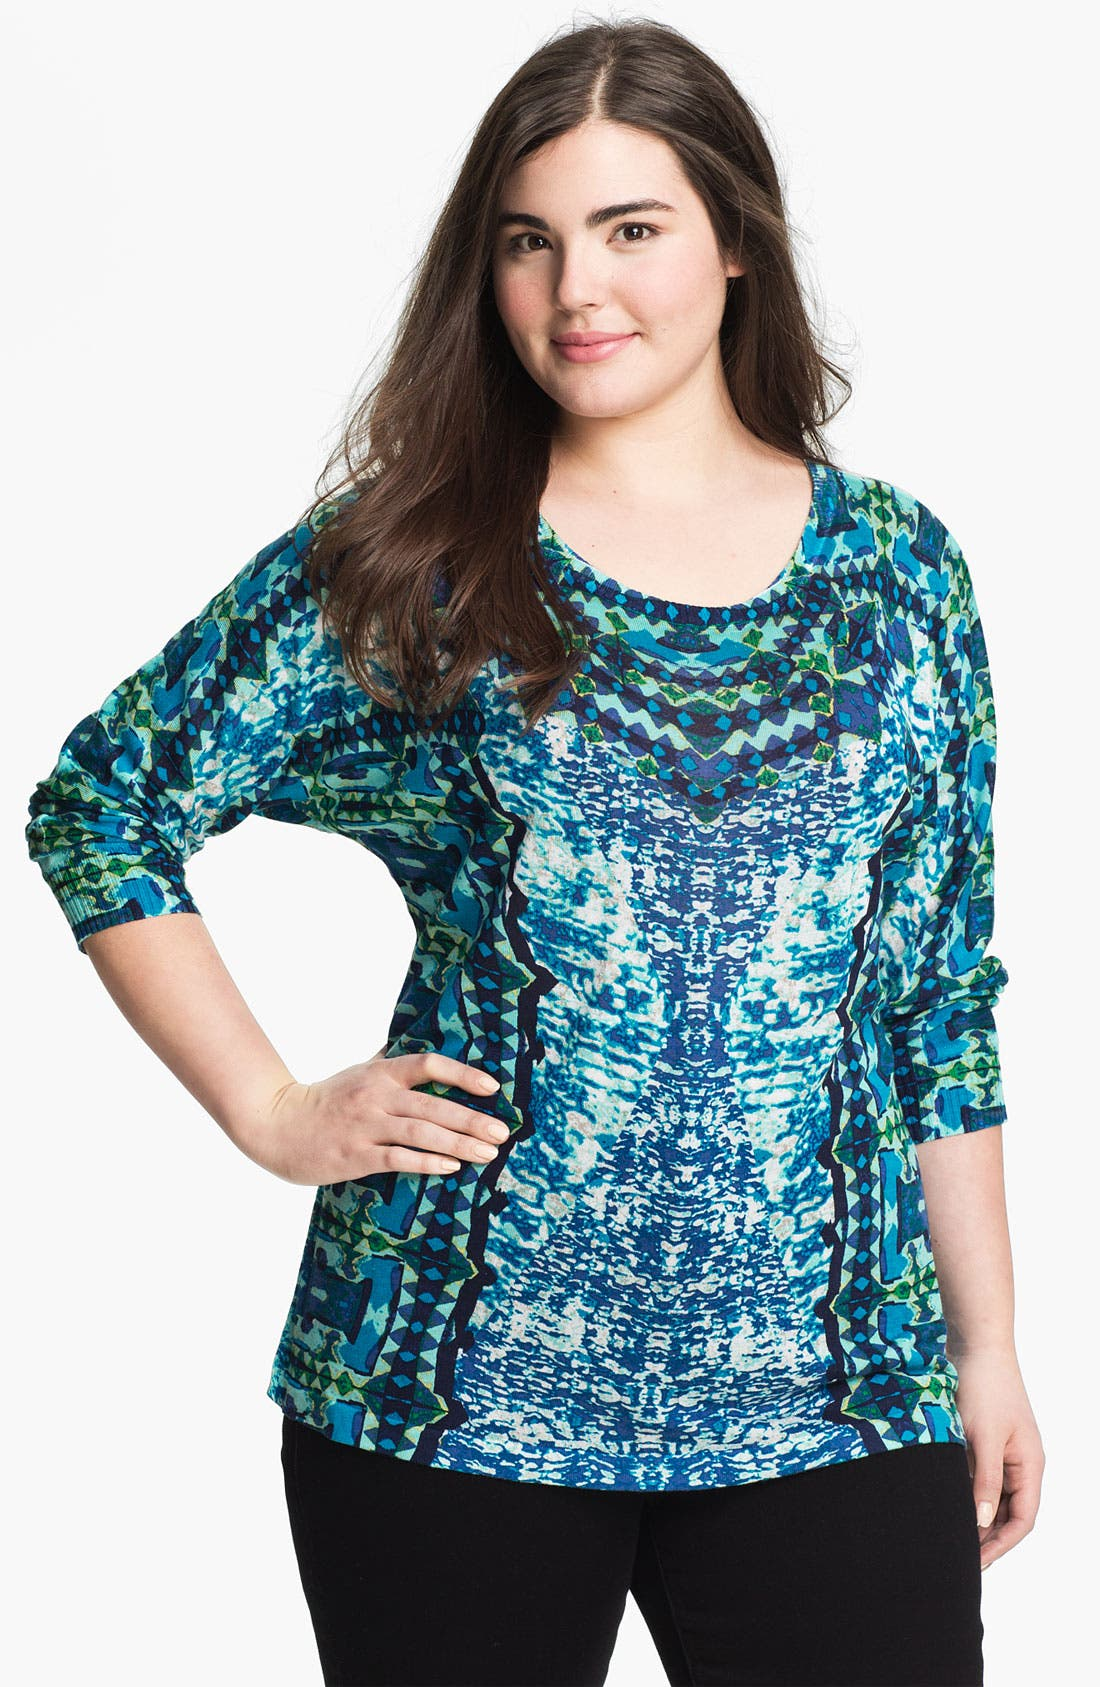 Main Image - Nic + Zoe 'Reflections' Print Top (Plus)